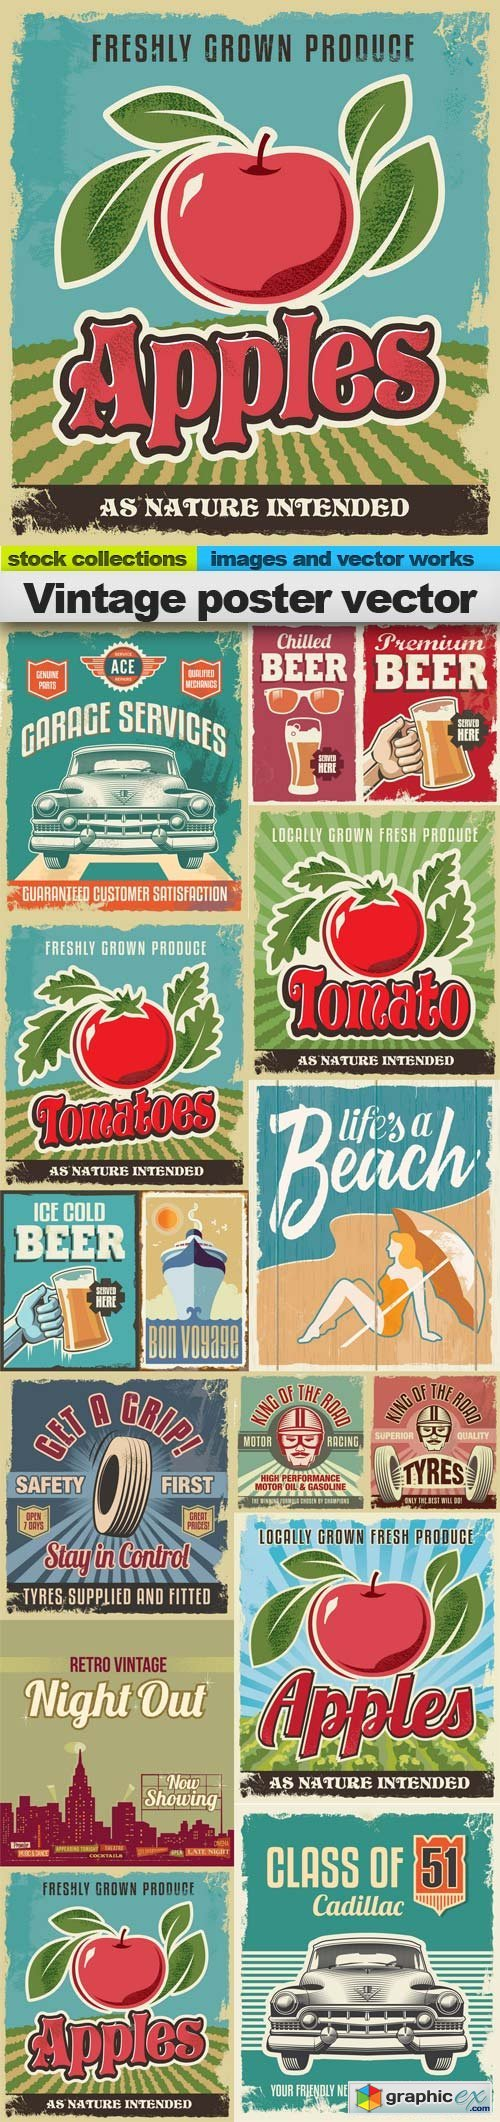 Vintage poster vector, 15 x EPS